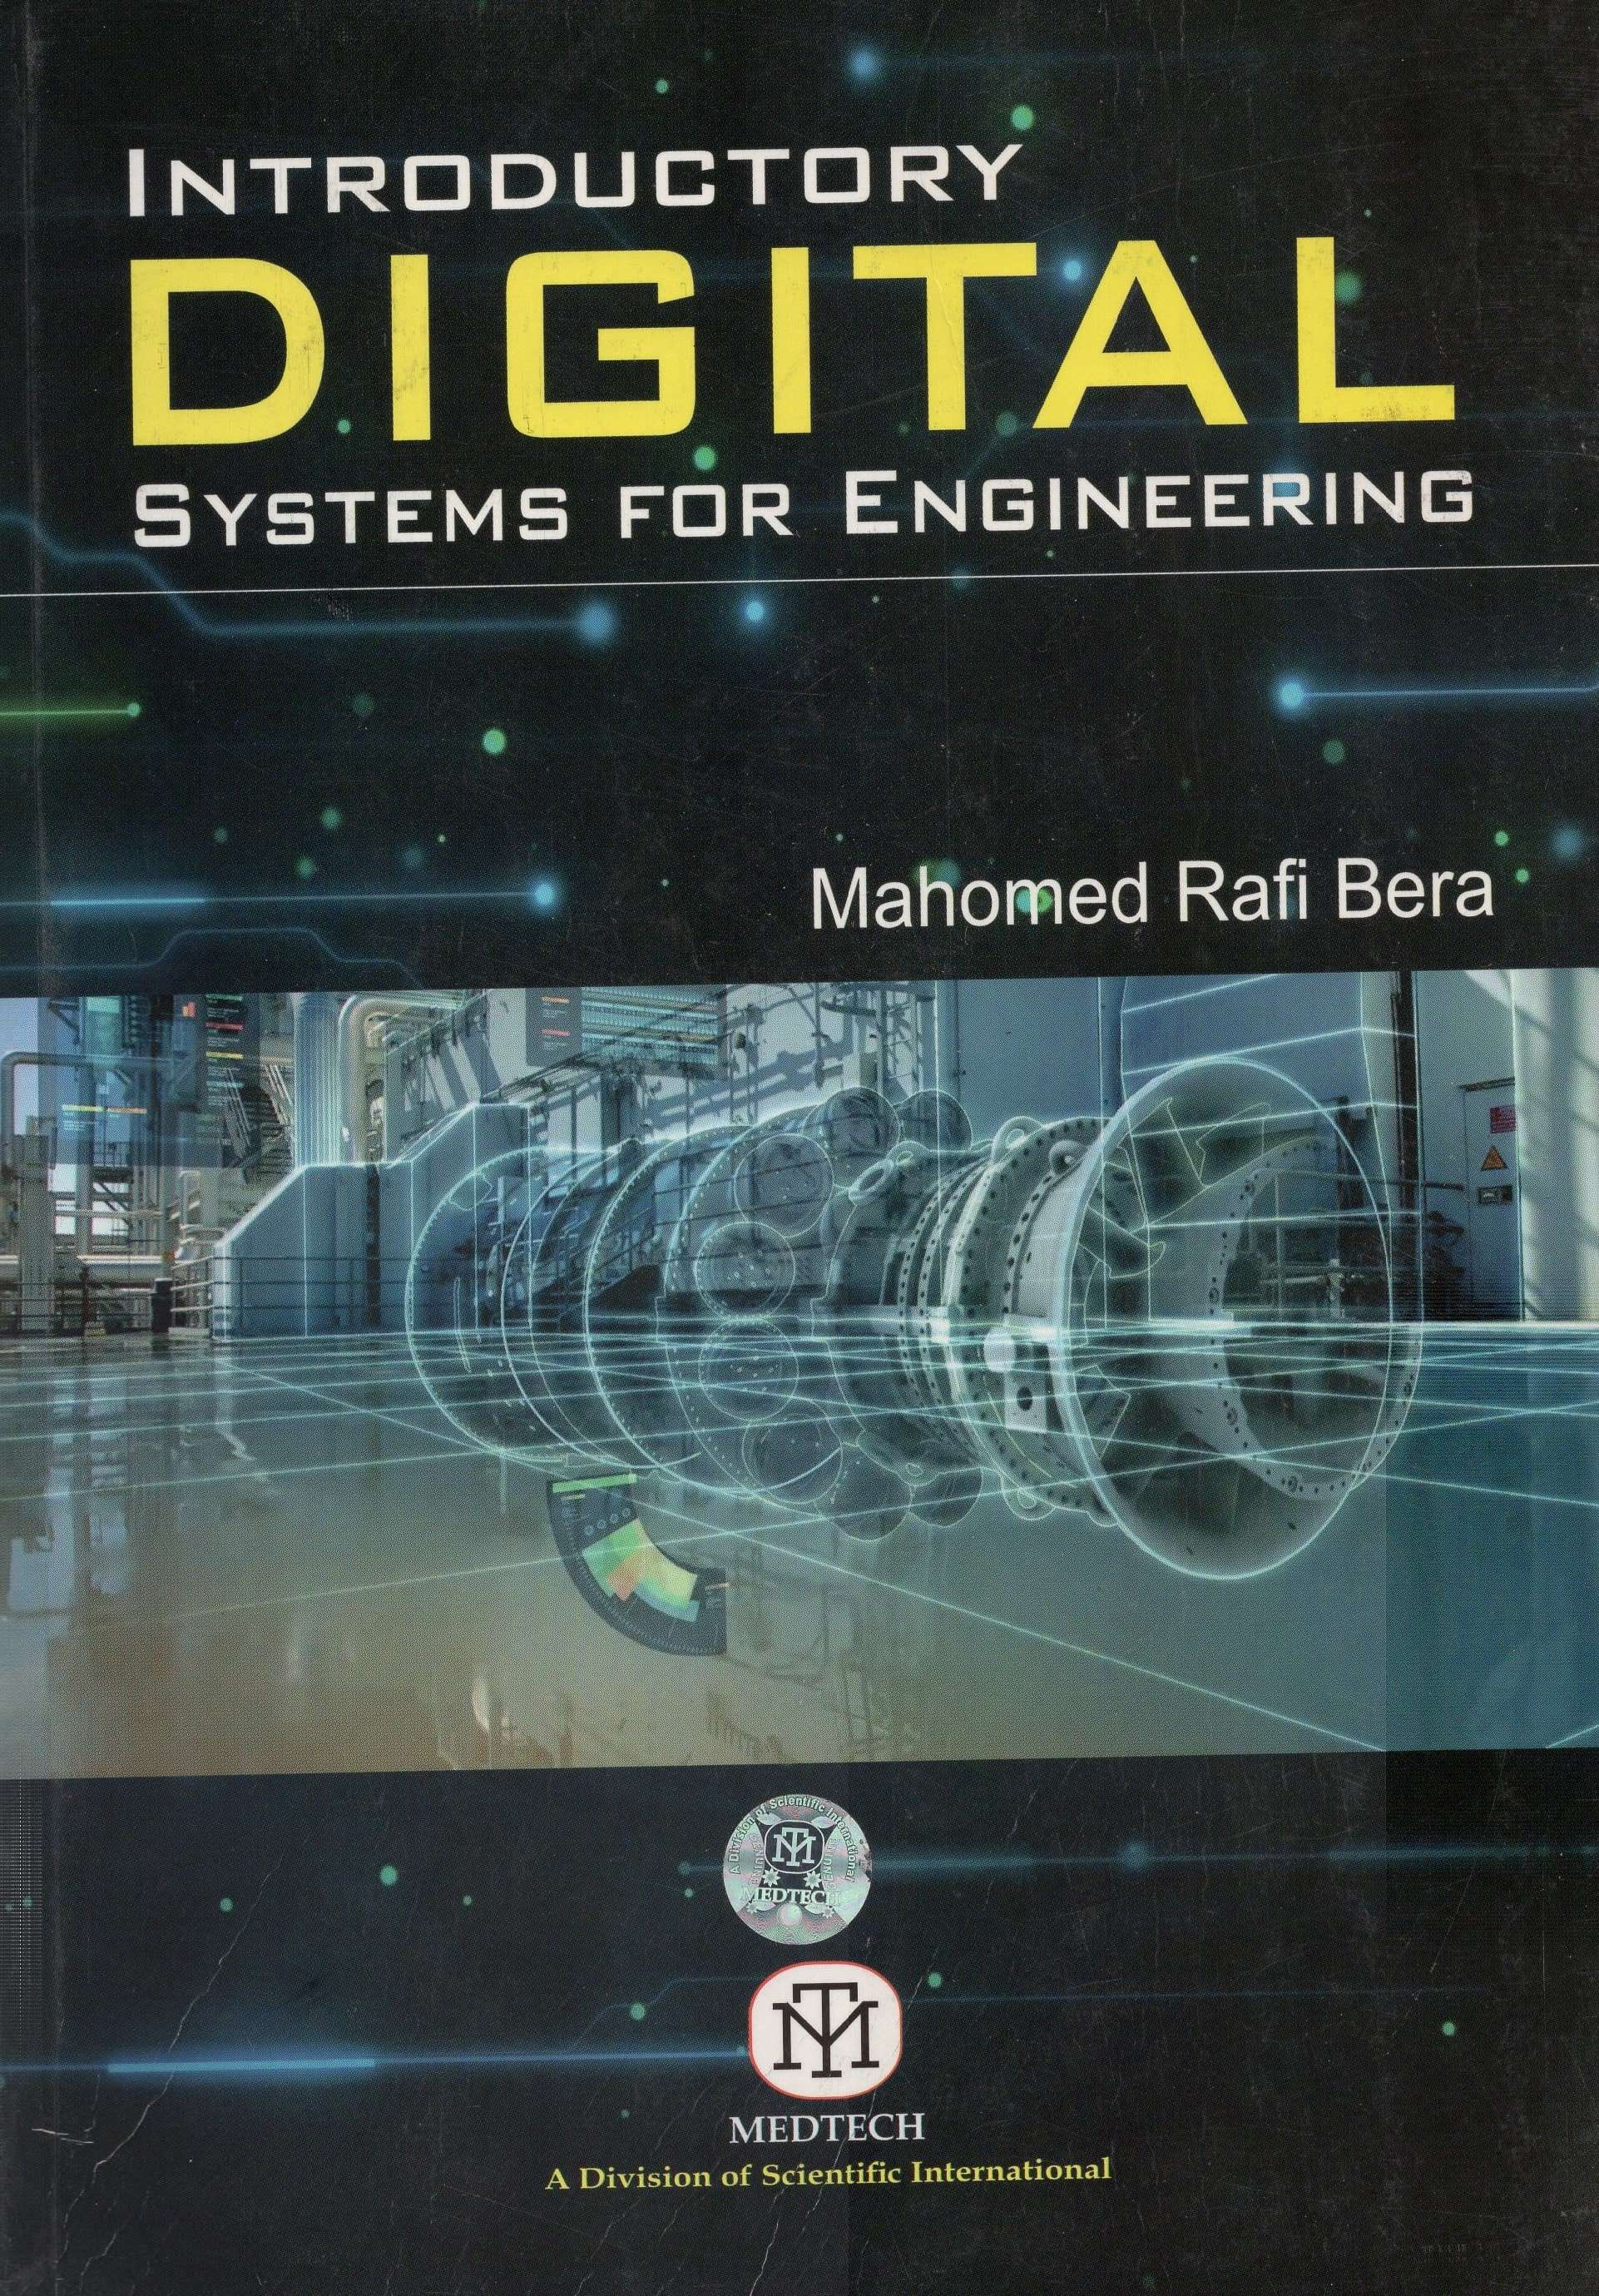 Introductory Digital Systems for Engineering